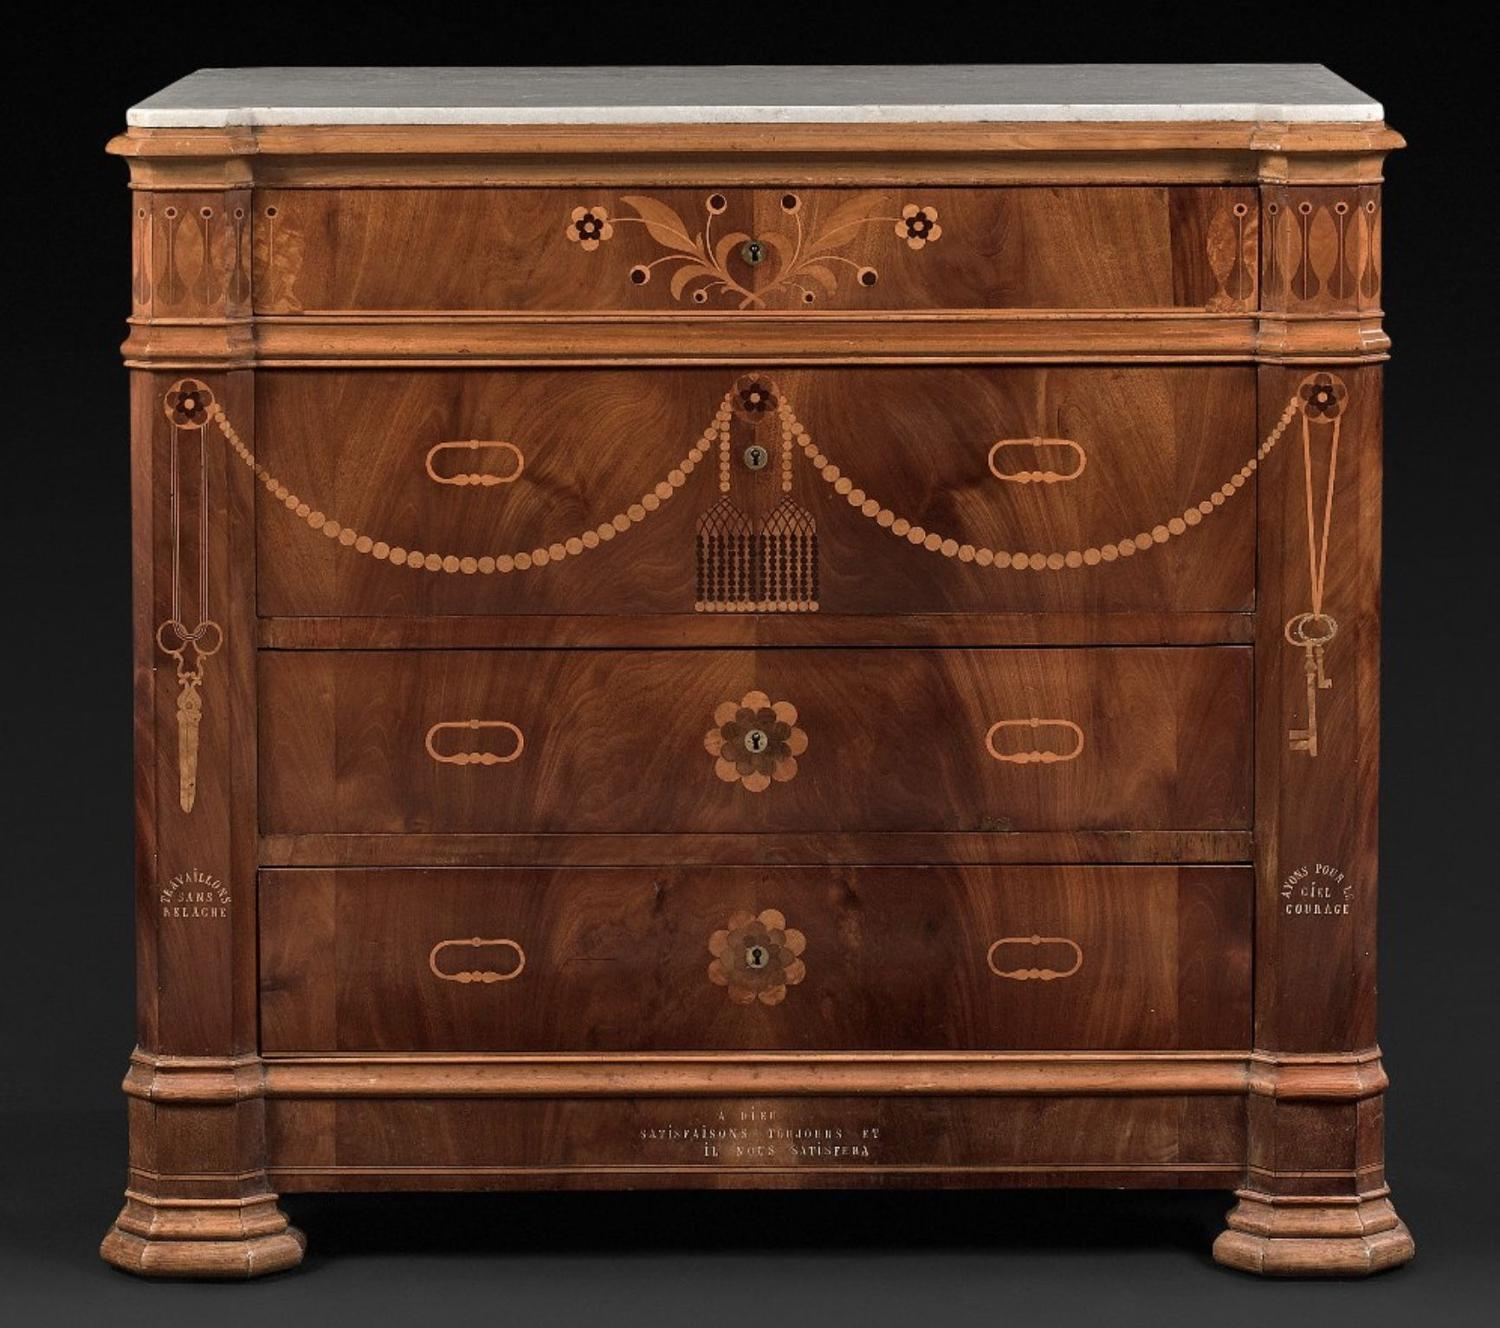 A RARE MARQUETRY COMMODE